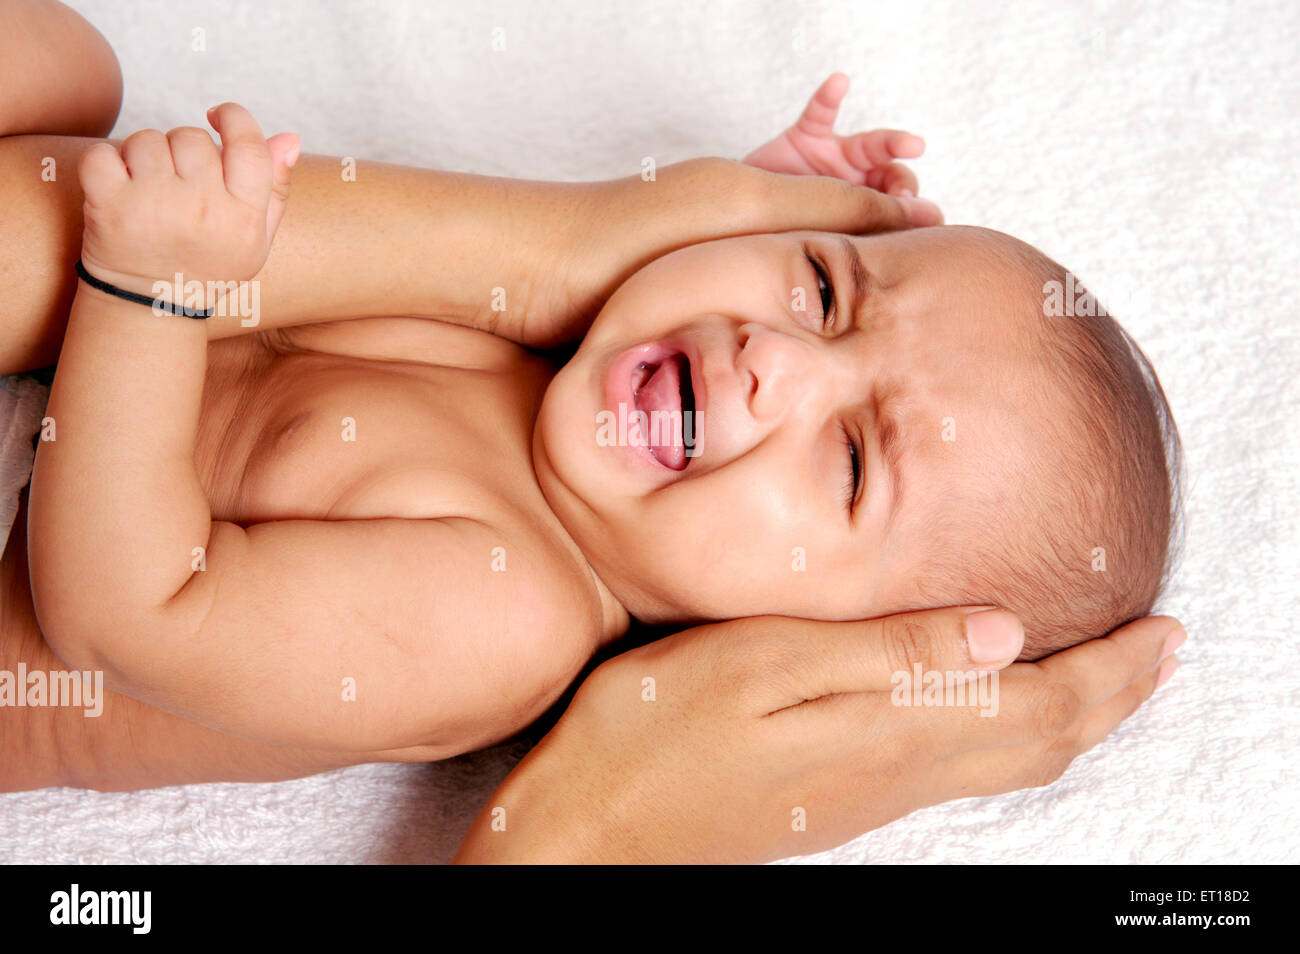 Indian baby Crying Head Protected by Mothers Hand MR#736LA MR#736K - Stock Image